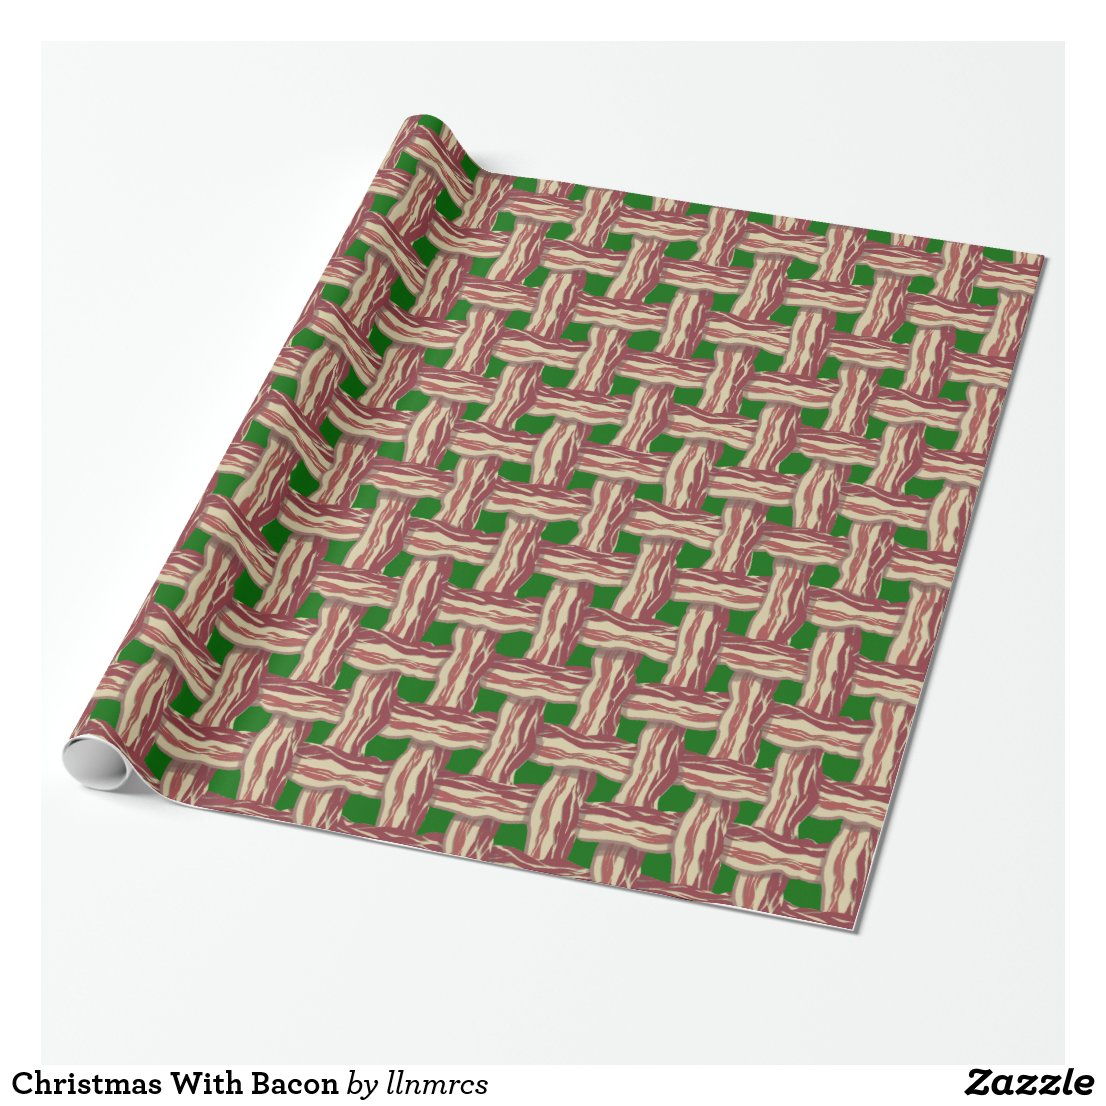 Christmas With Bacon Wrapping Paper